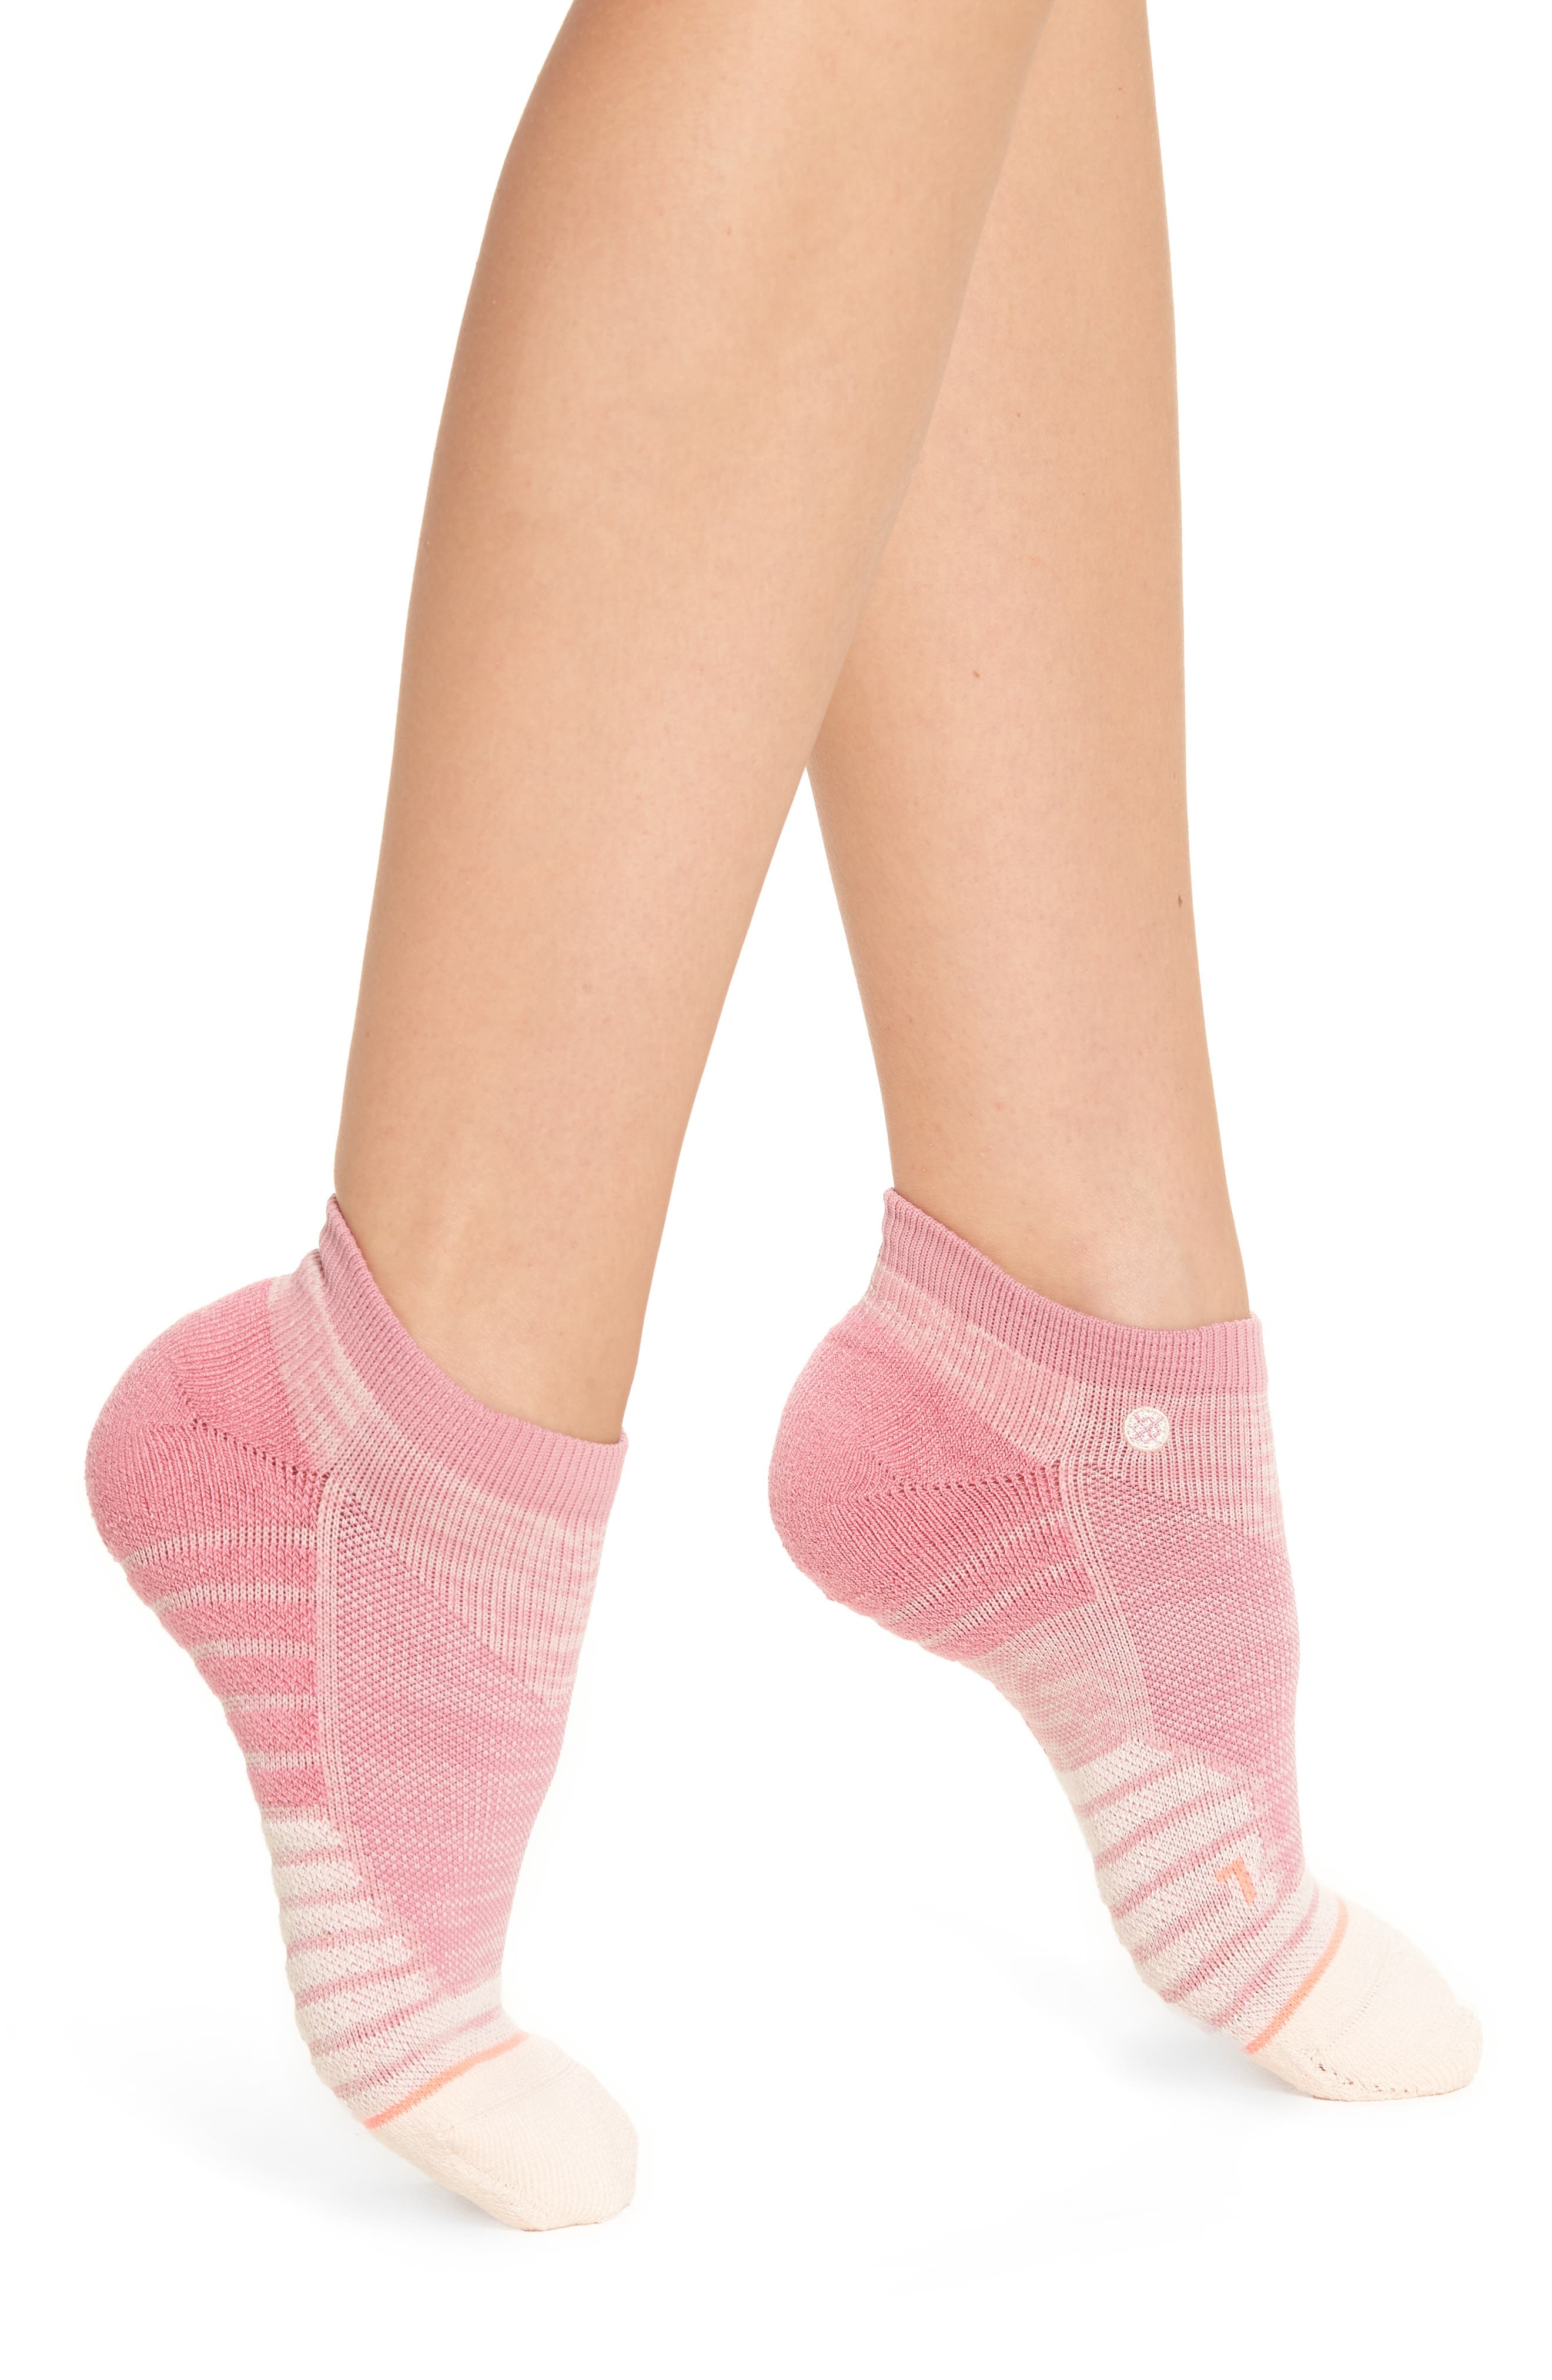 Circuit Athletic Low Cut Socks,                             Main thumbnail 1, color,                             650